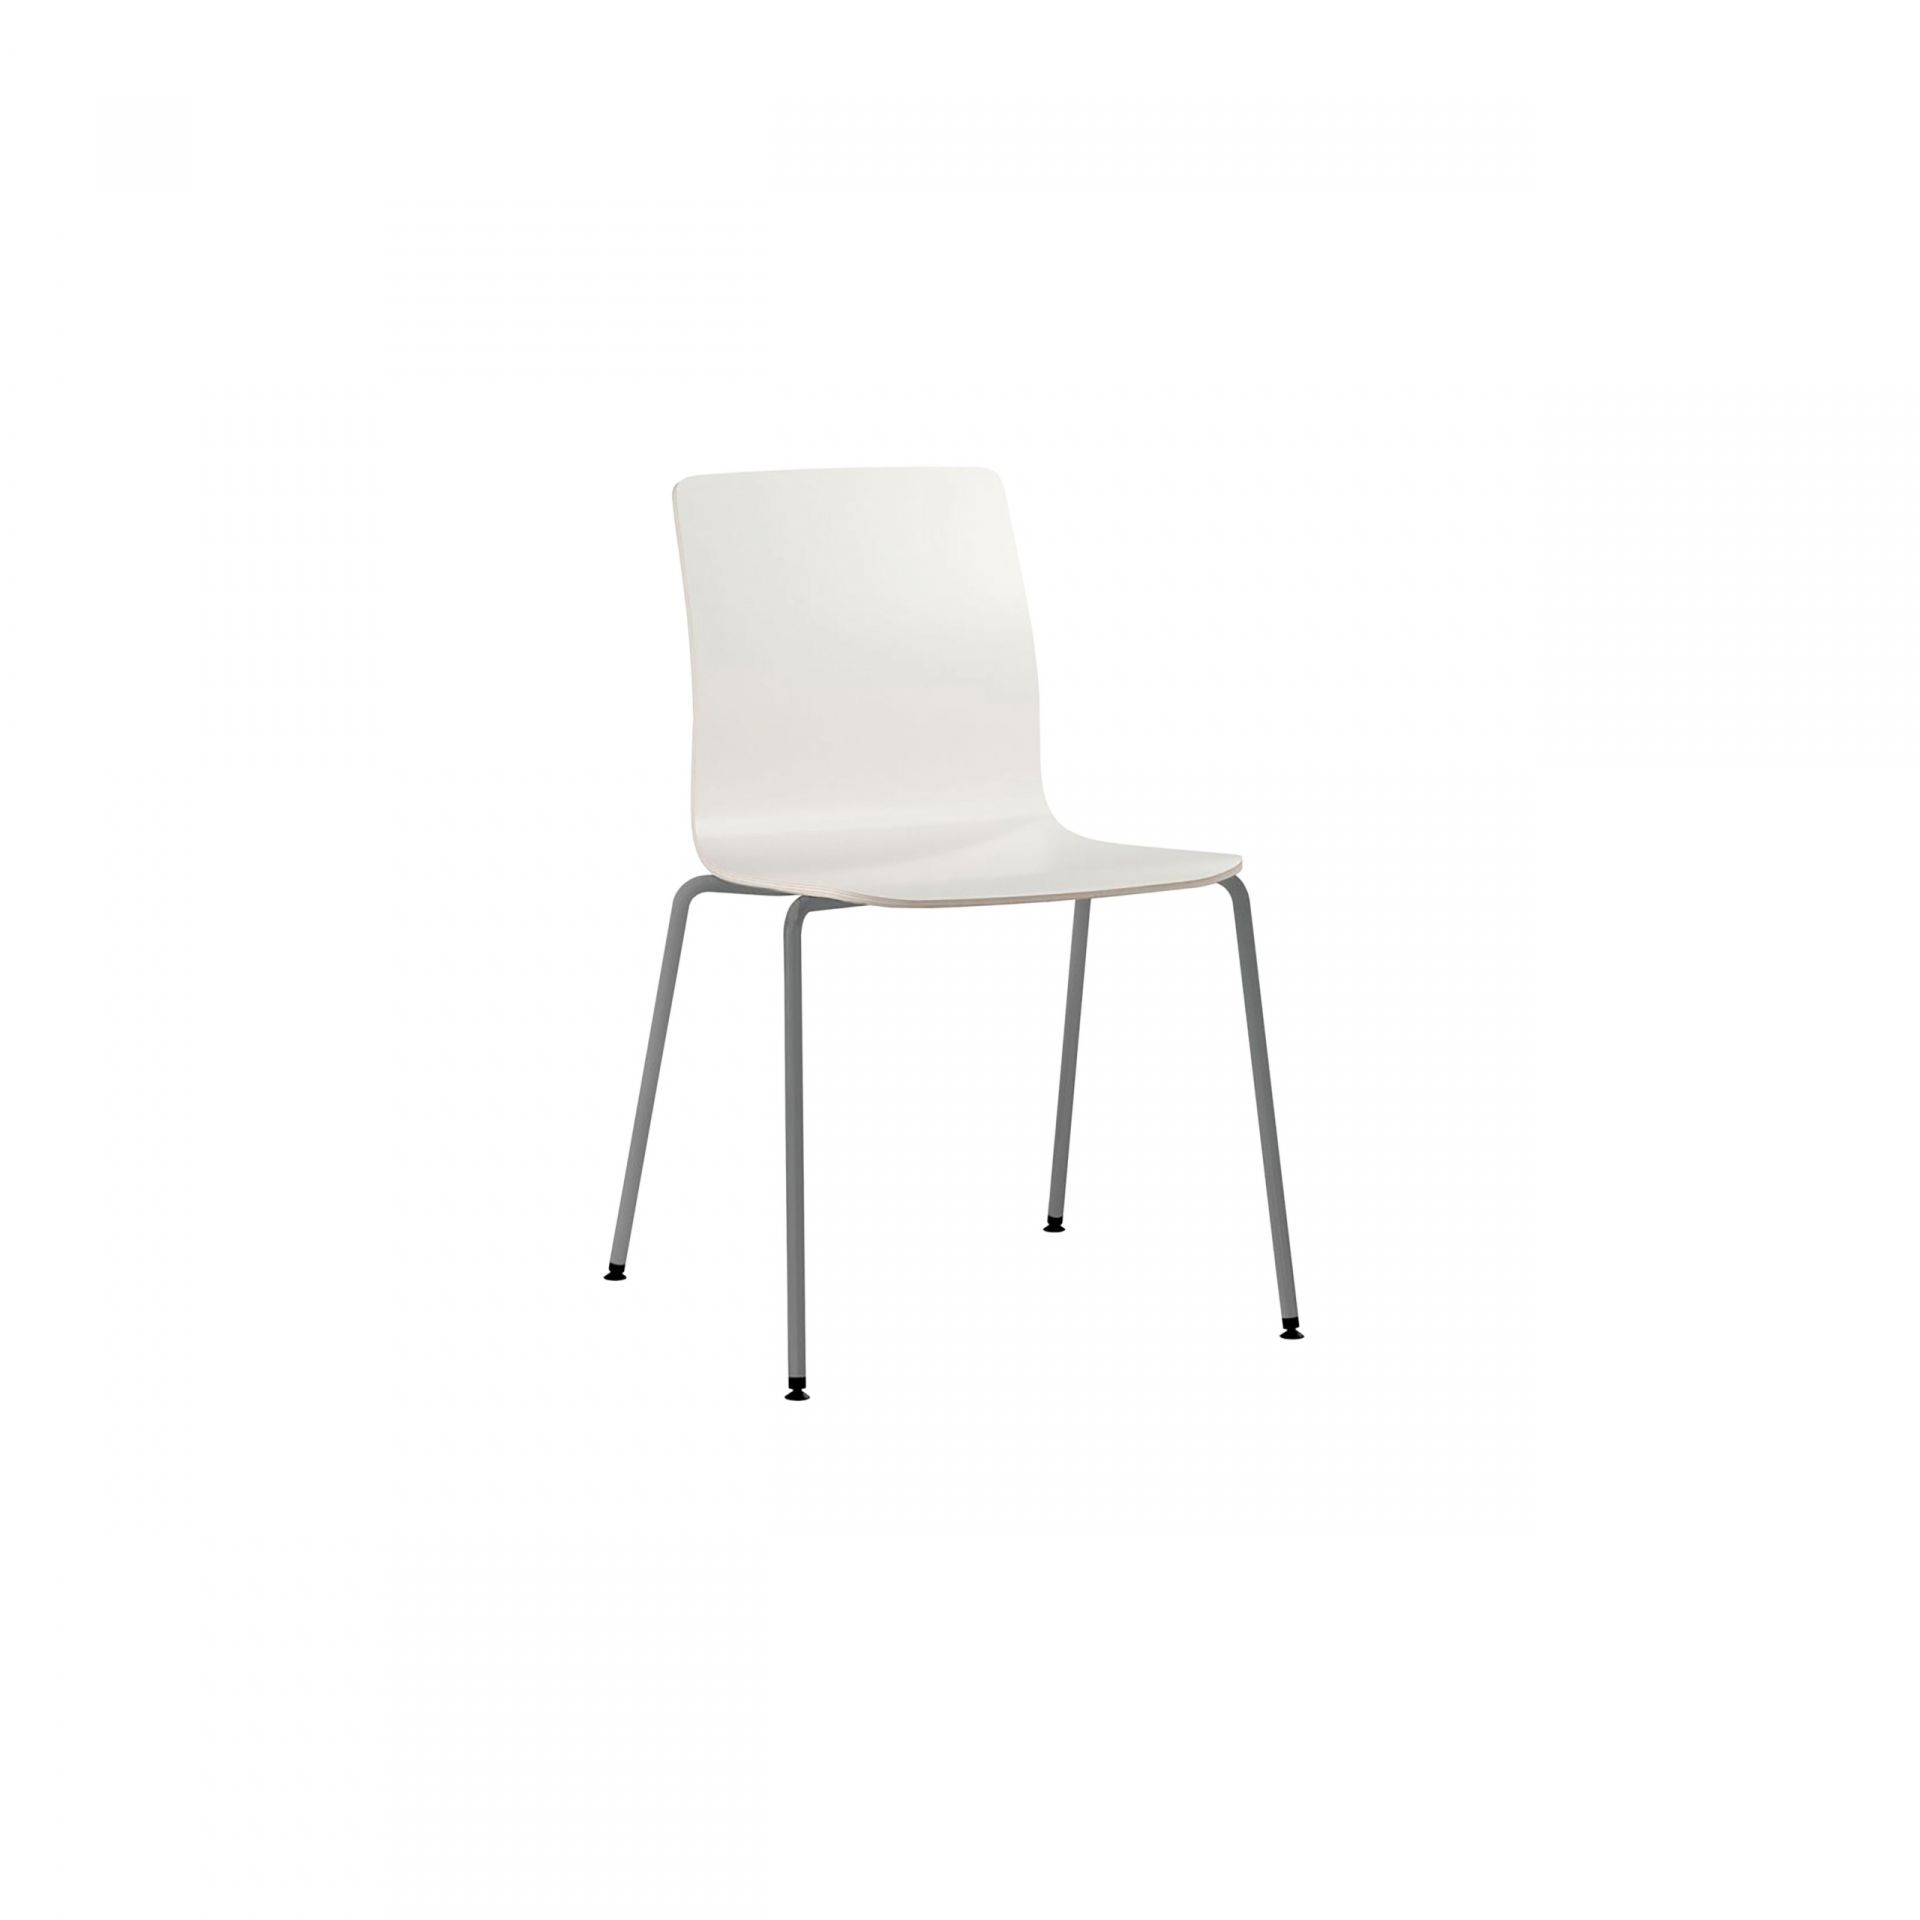 Nova Chair with metal legs product image 2